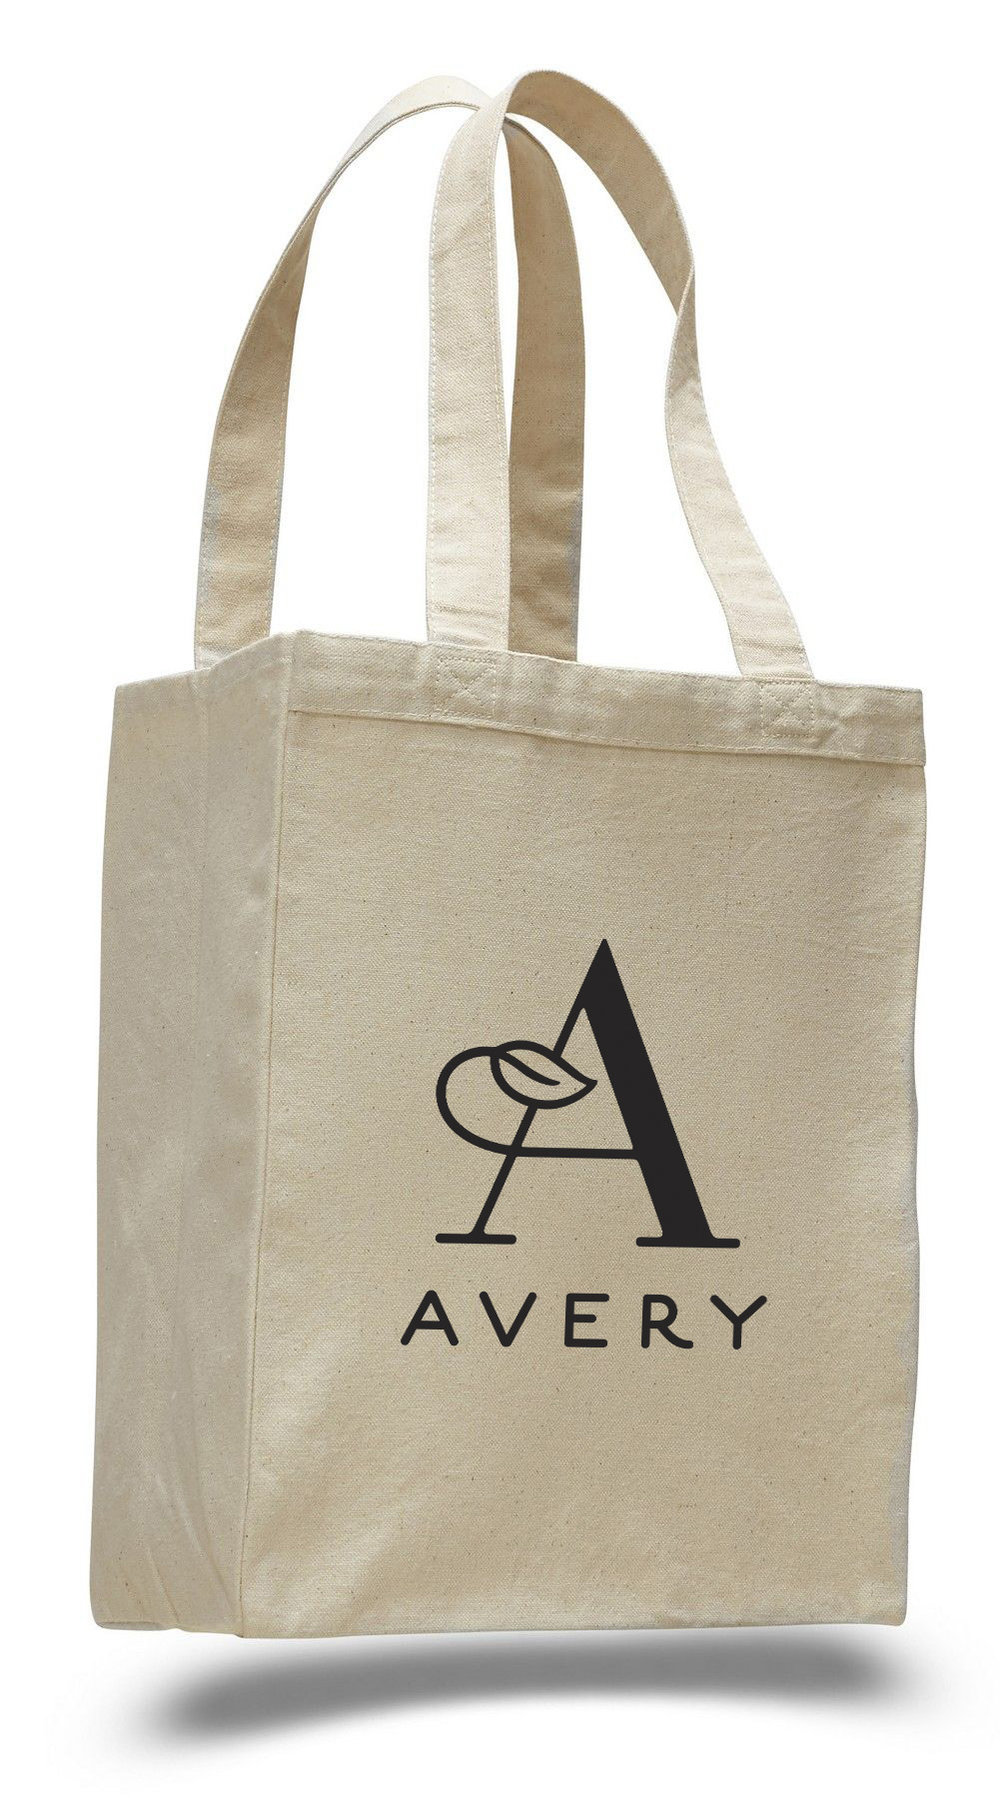 Promotional tote bag for the re-design of Avery's logo.